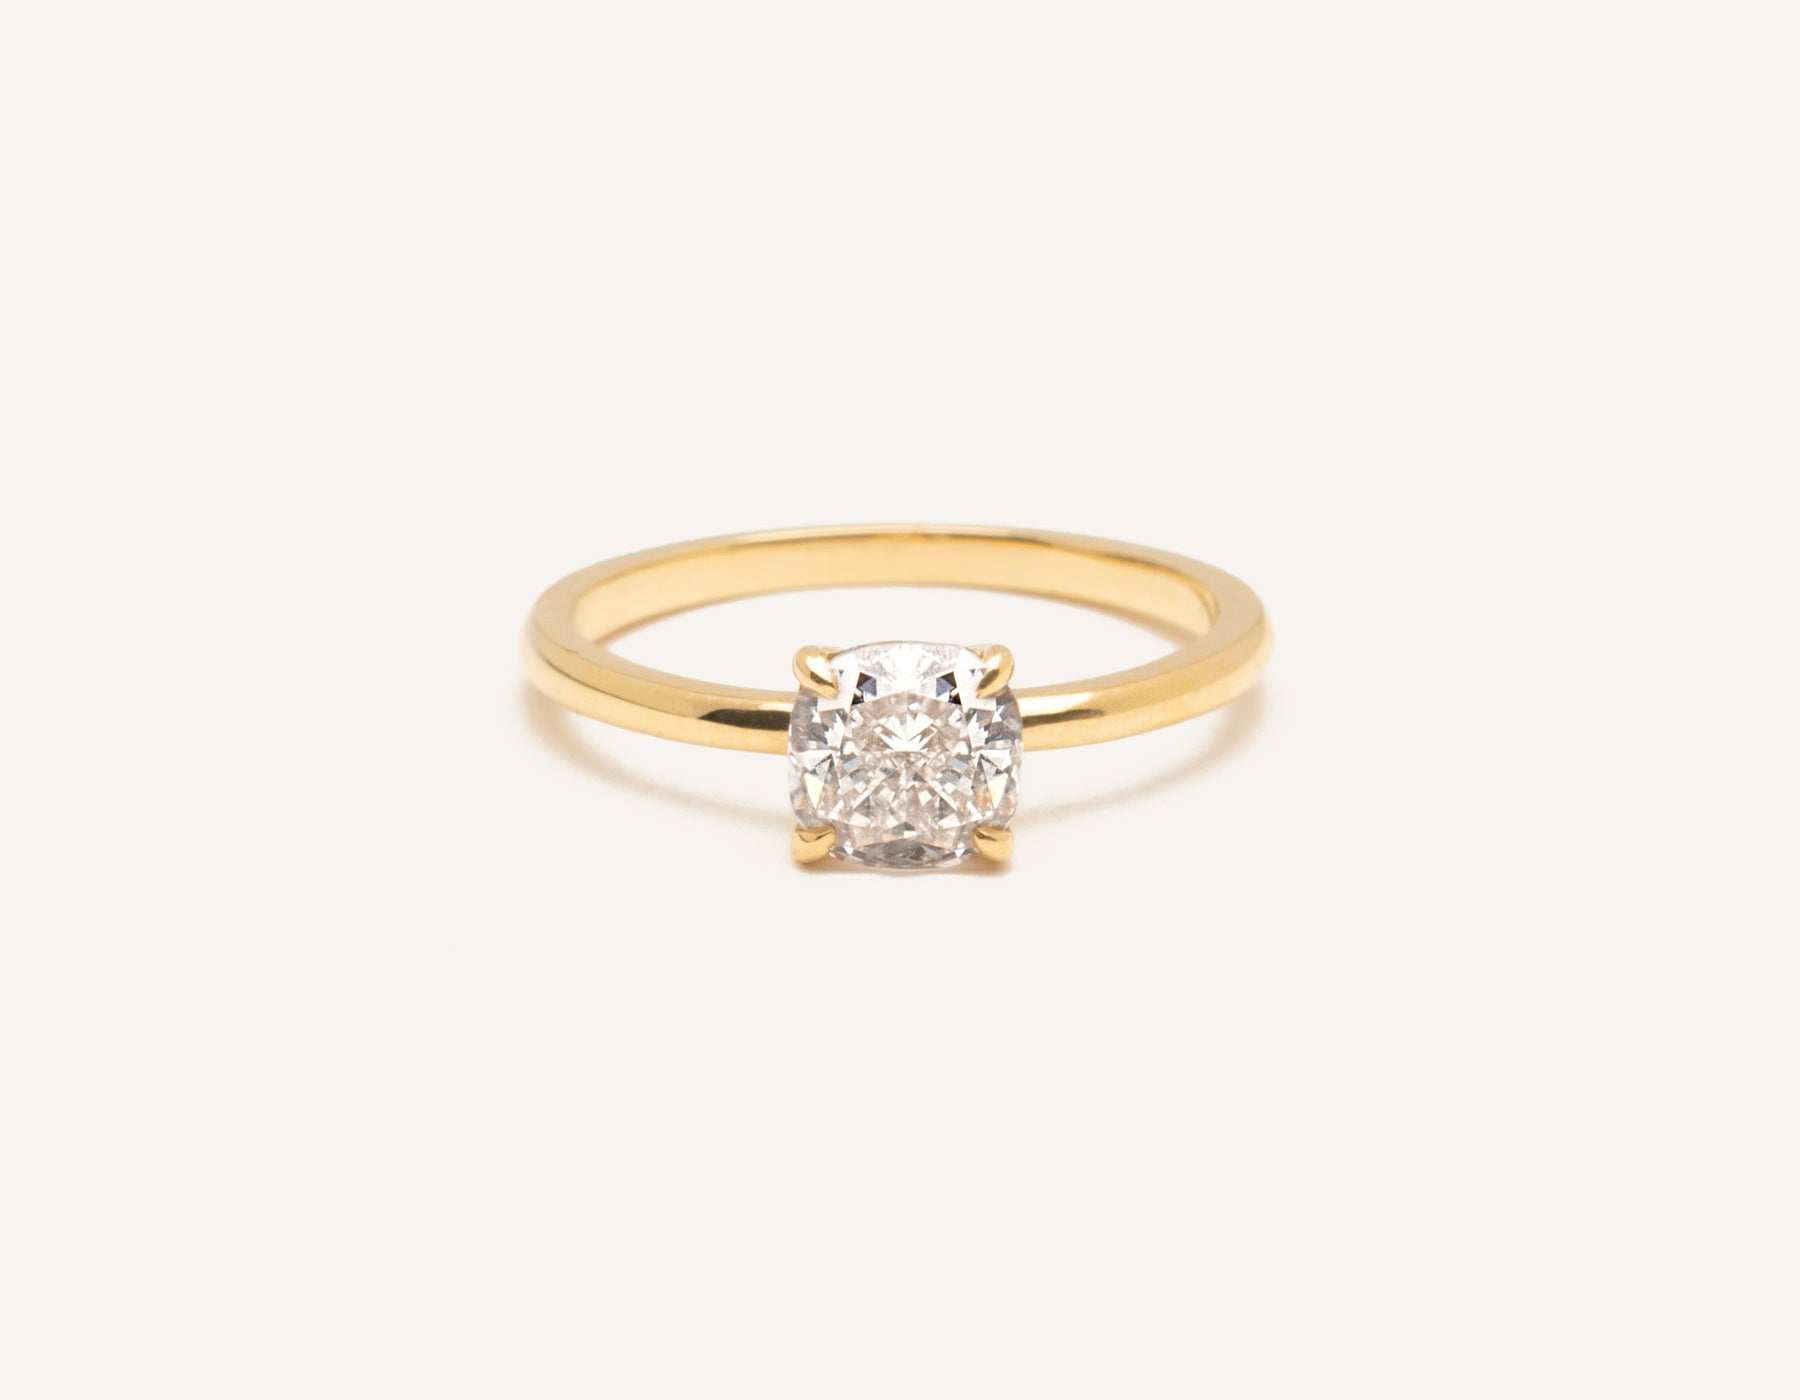 Minimalist 18k solid yellow gold The Cushion engagement ring 1 ct diamond Vrai and Oro